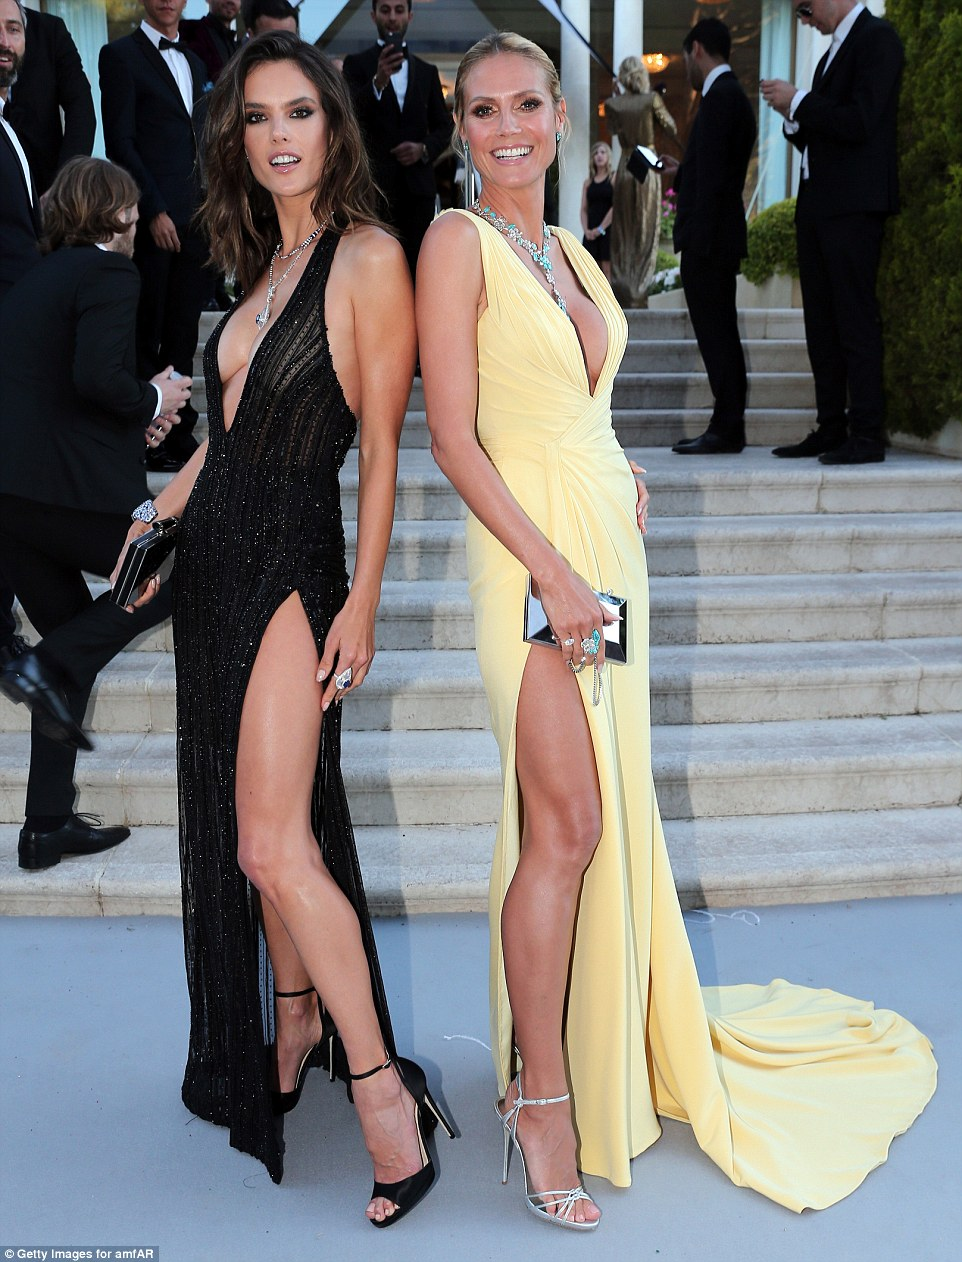 Legs eleven: The pair had certainly gone for similar styles with plunging necklines and thigh-high splits